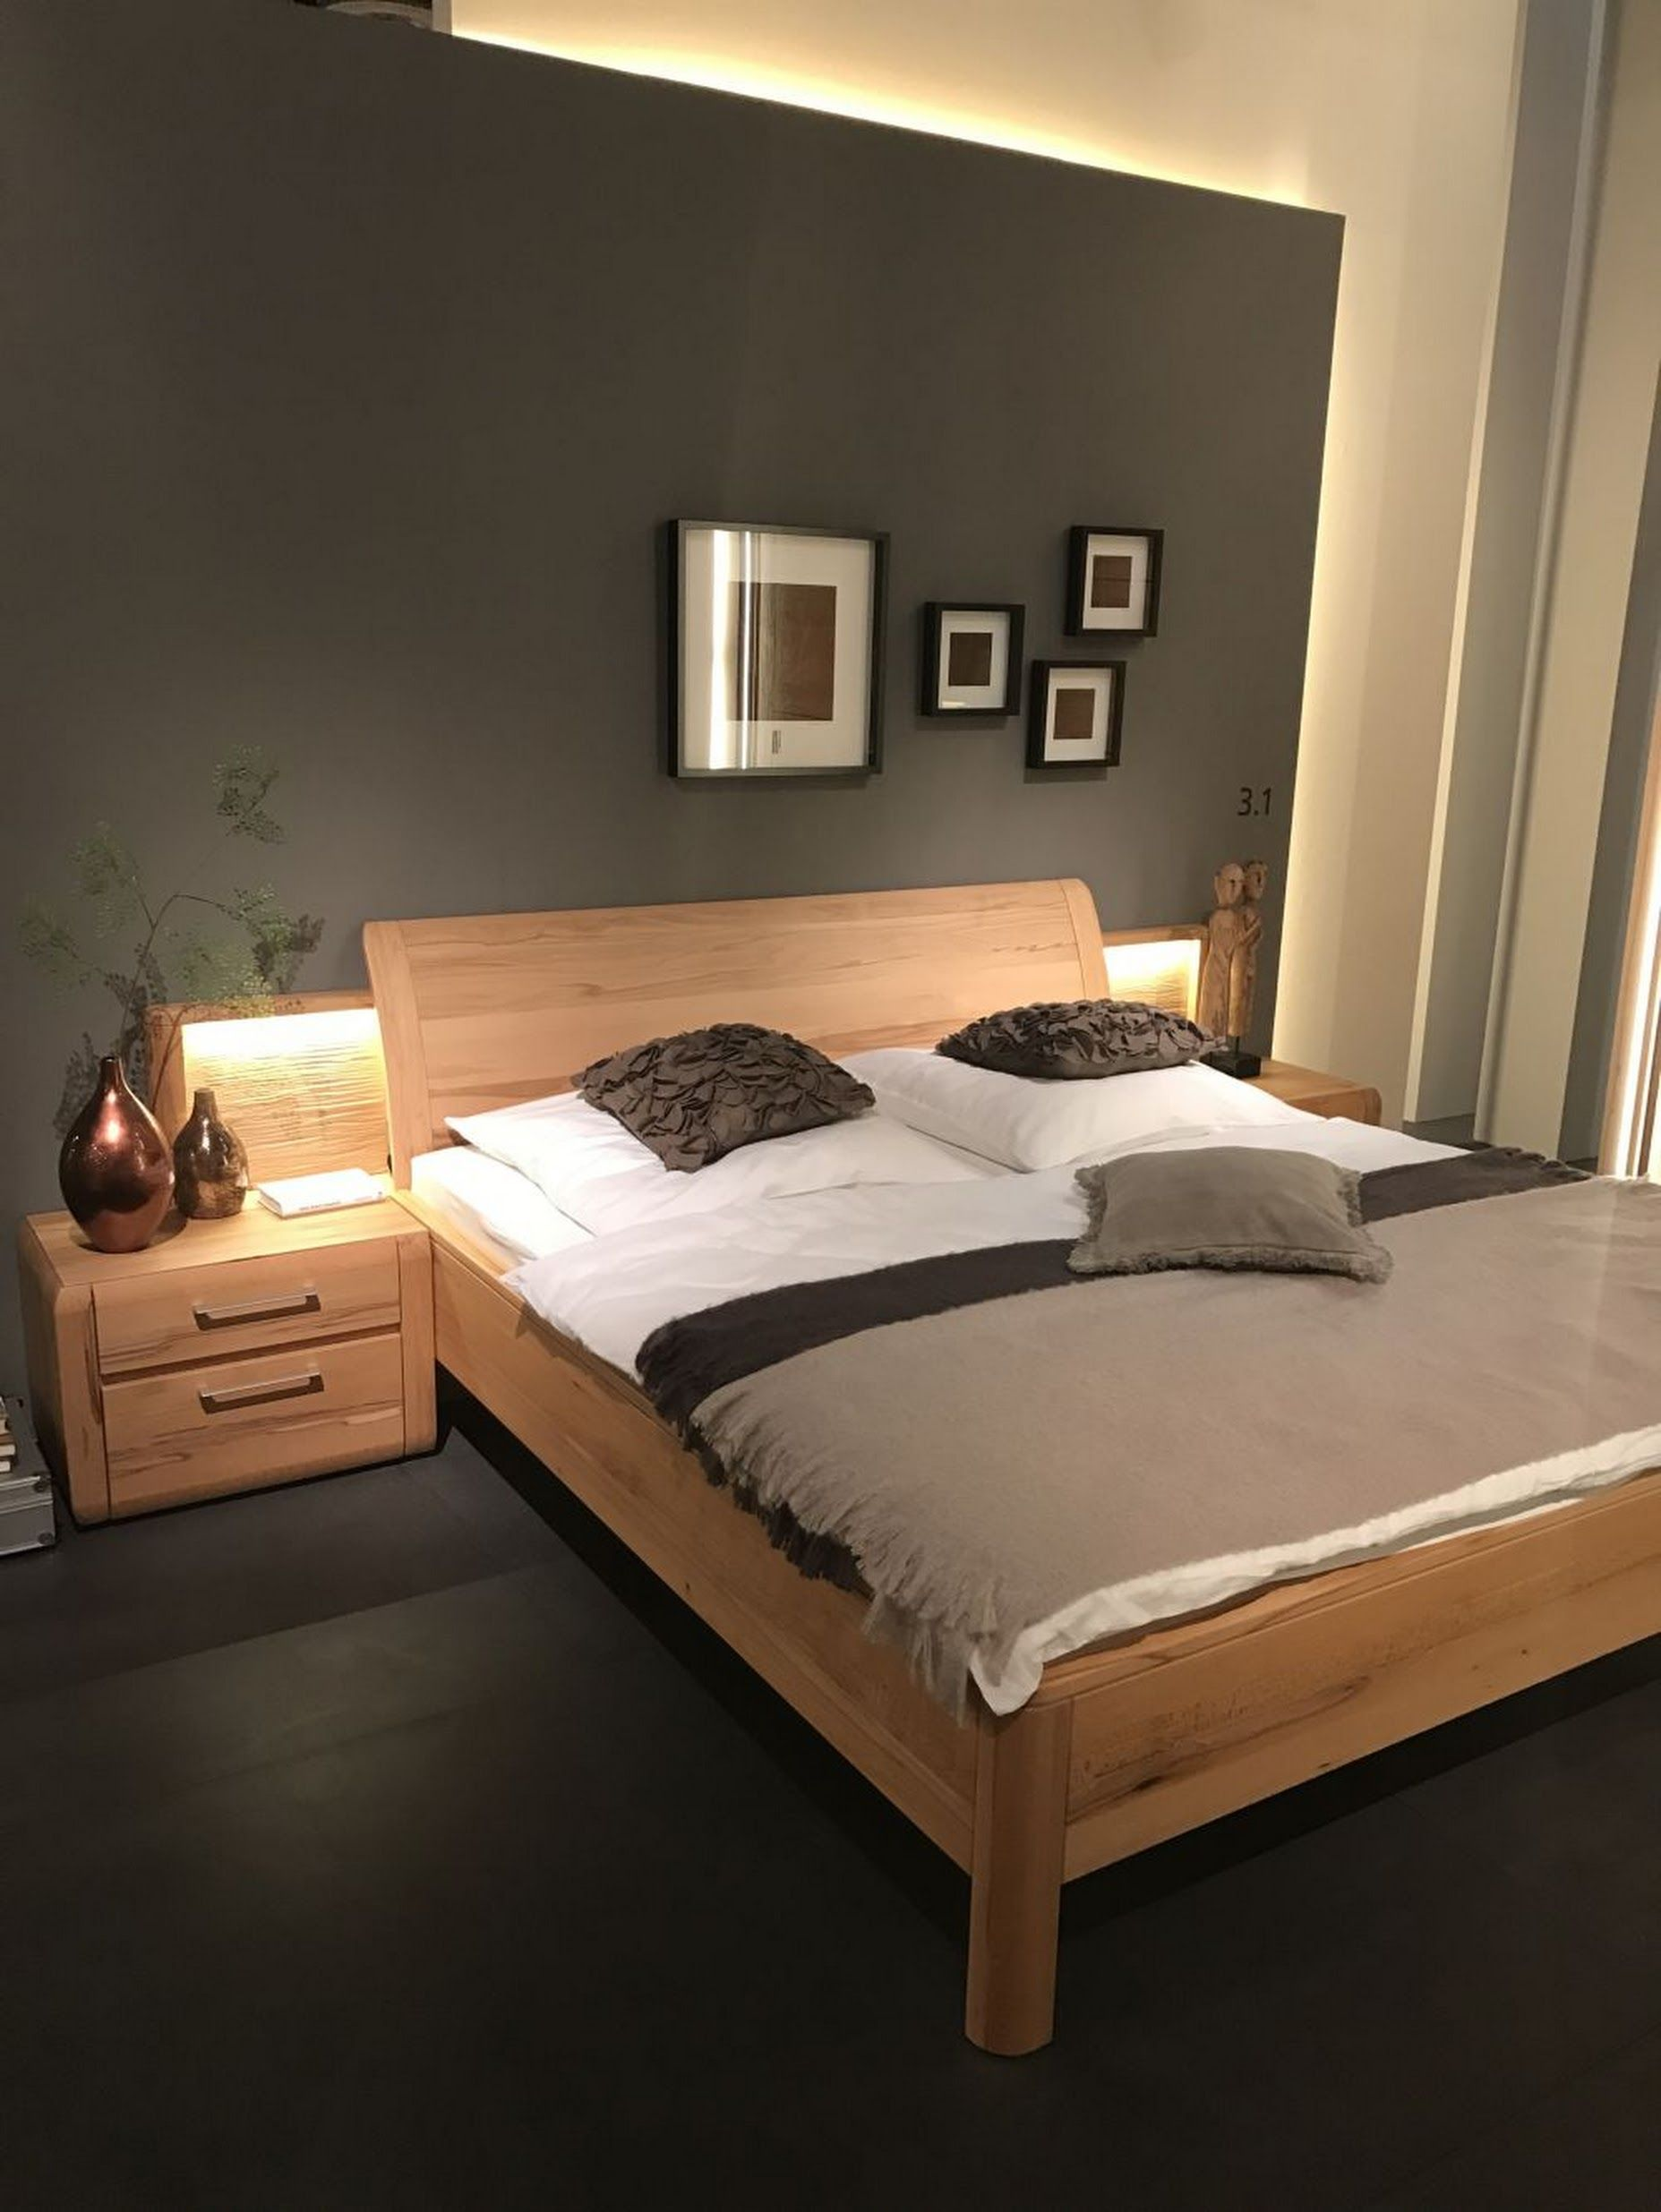 Wood bed with LED lighting behind